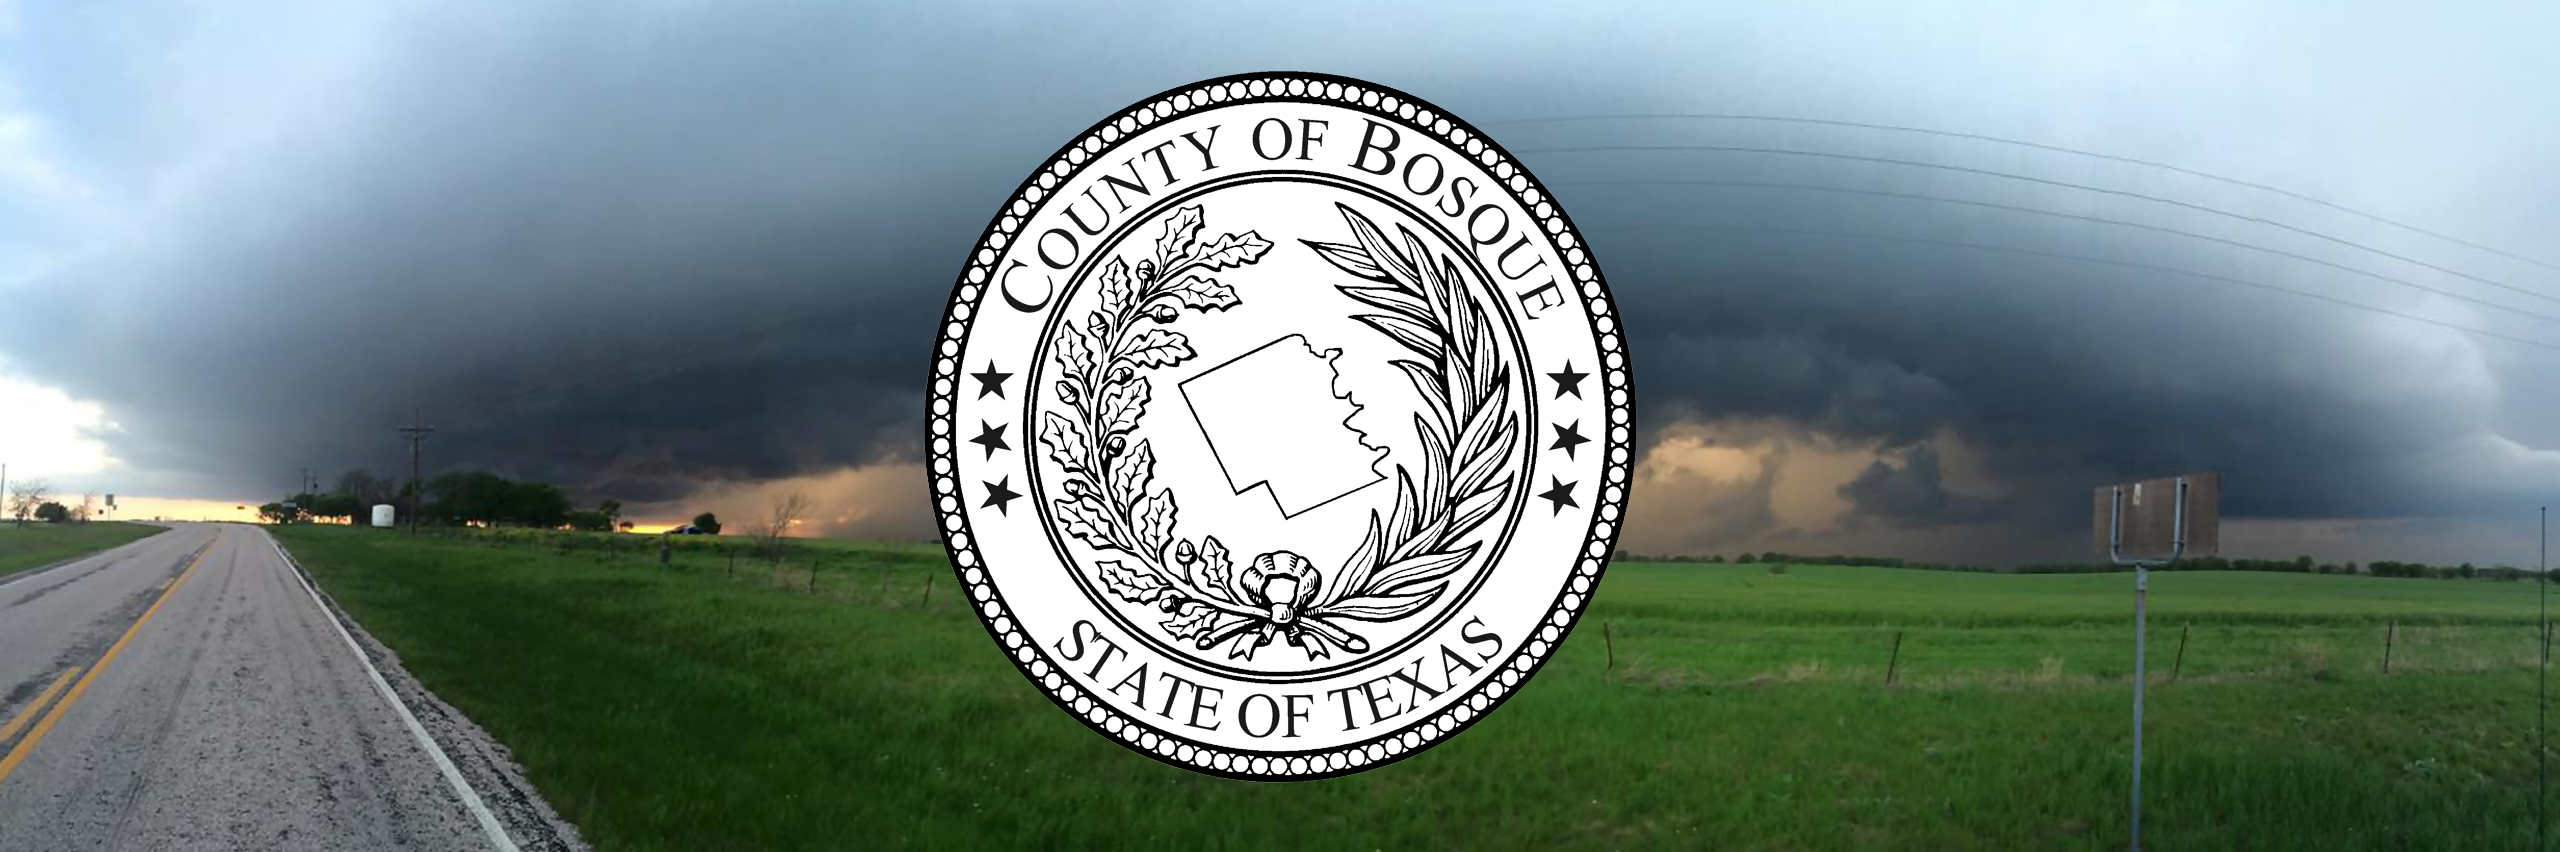 Bosque County Texas